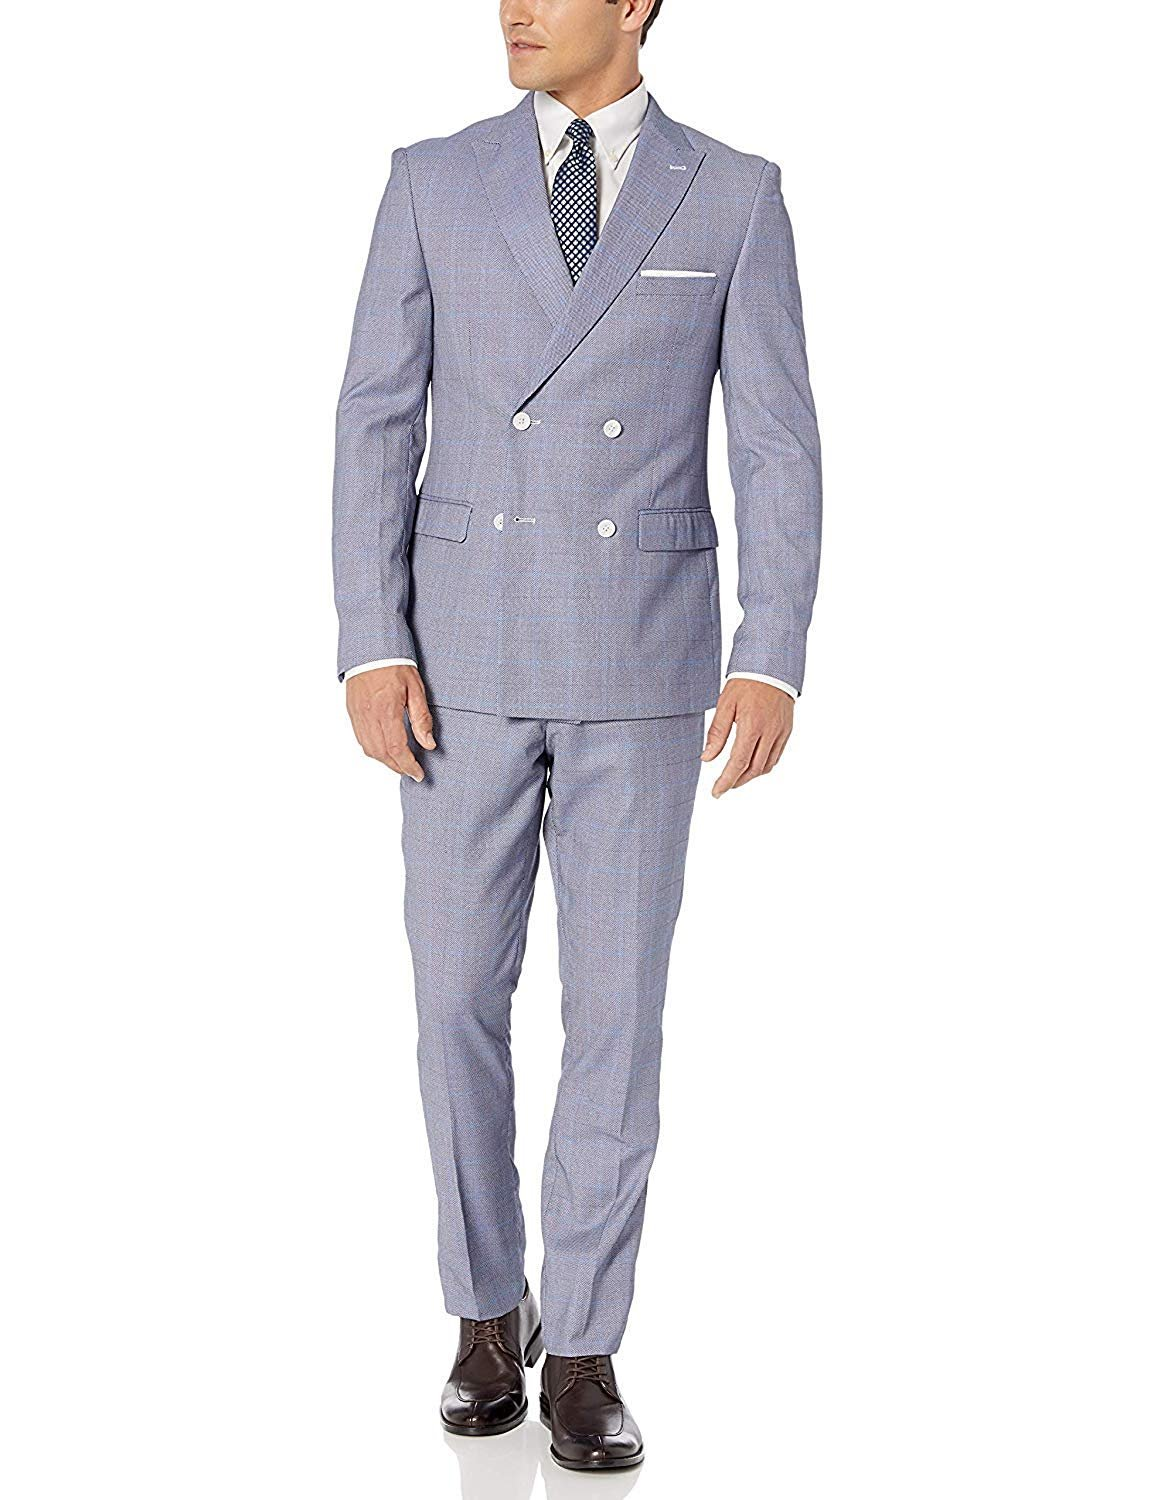 Adam Baker Mens Modern Fit 2-Piece Single Breasted Two Button Wool//Silk Blend Suit Colors